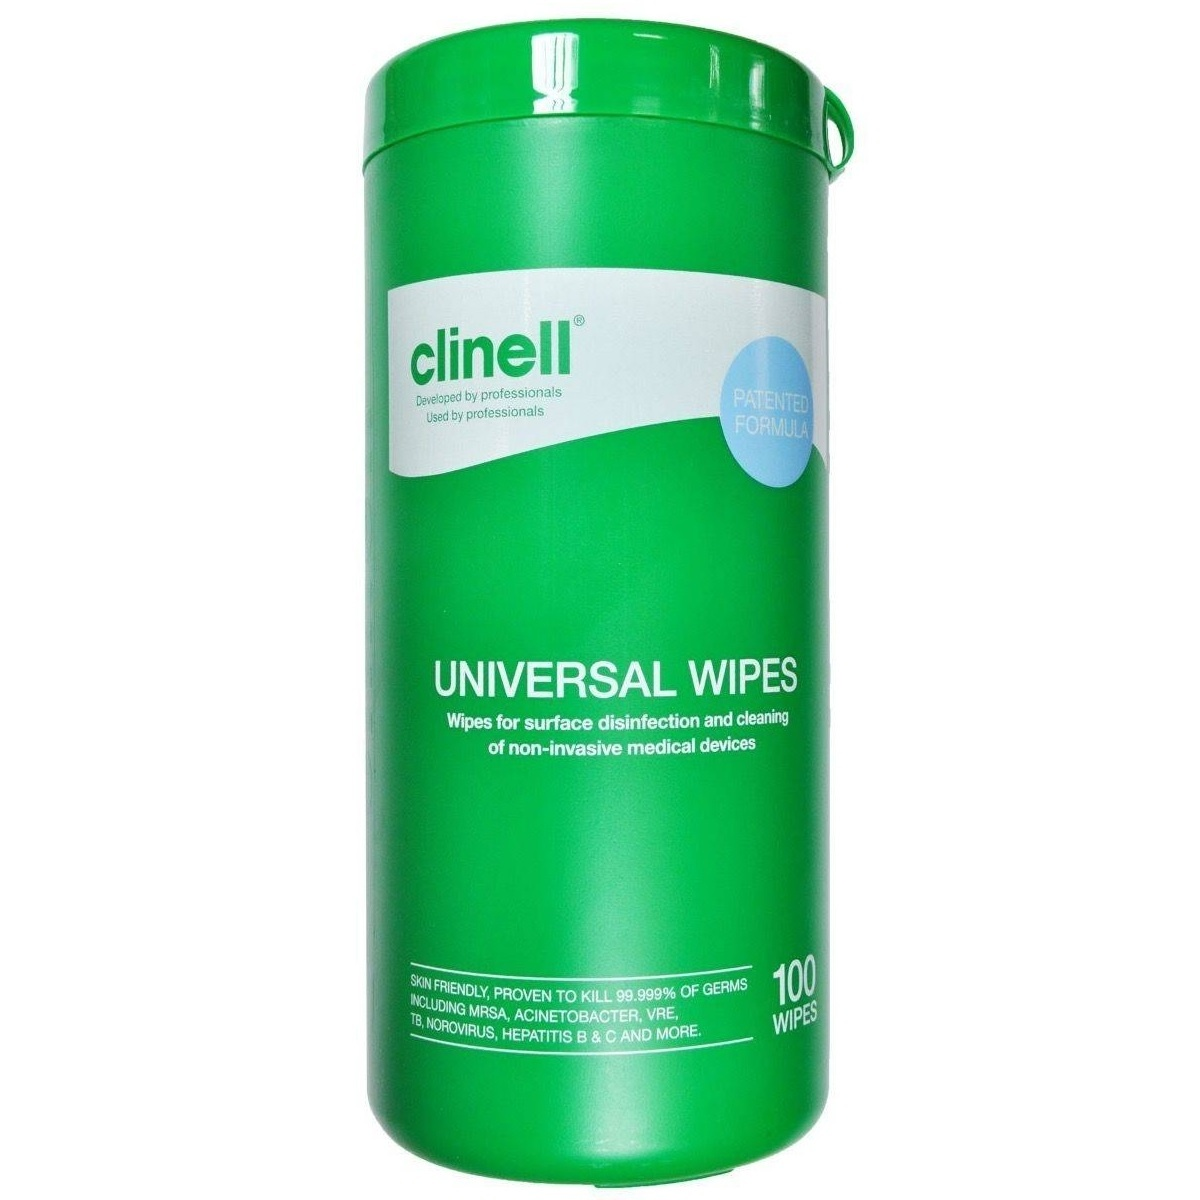 clinell tub of 100 wipes - nayble